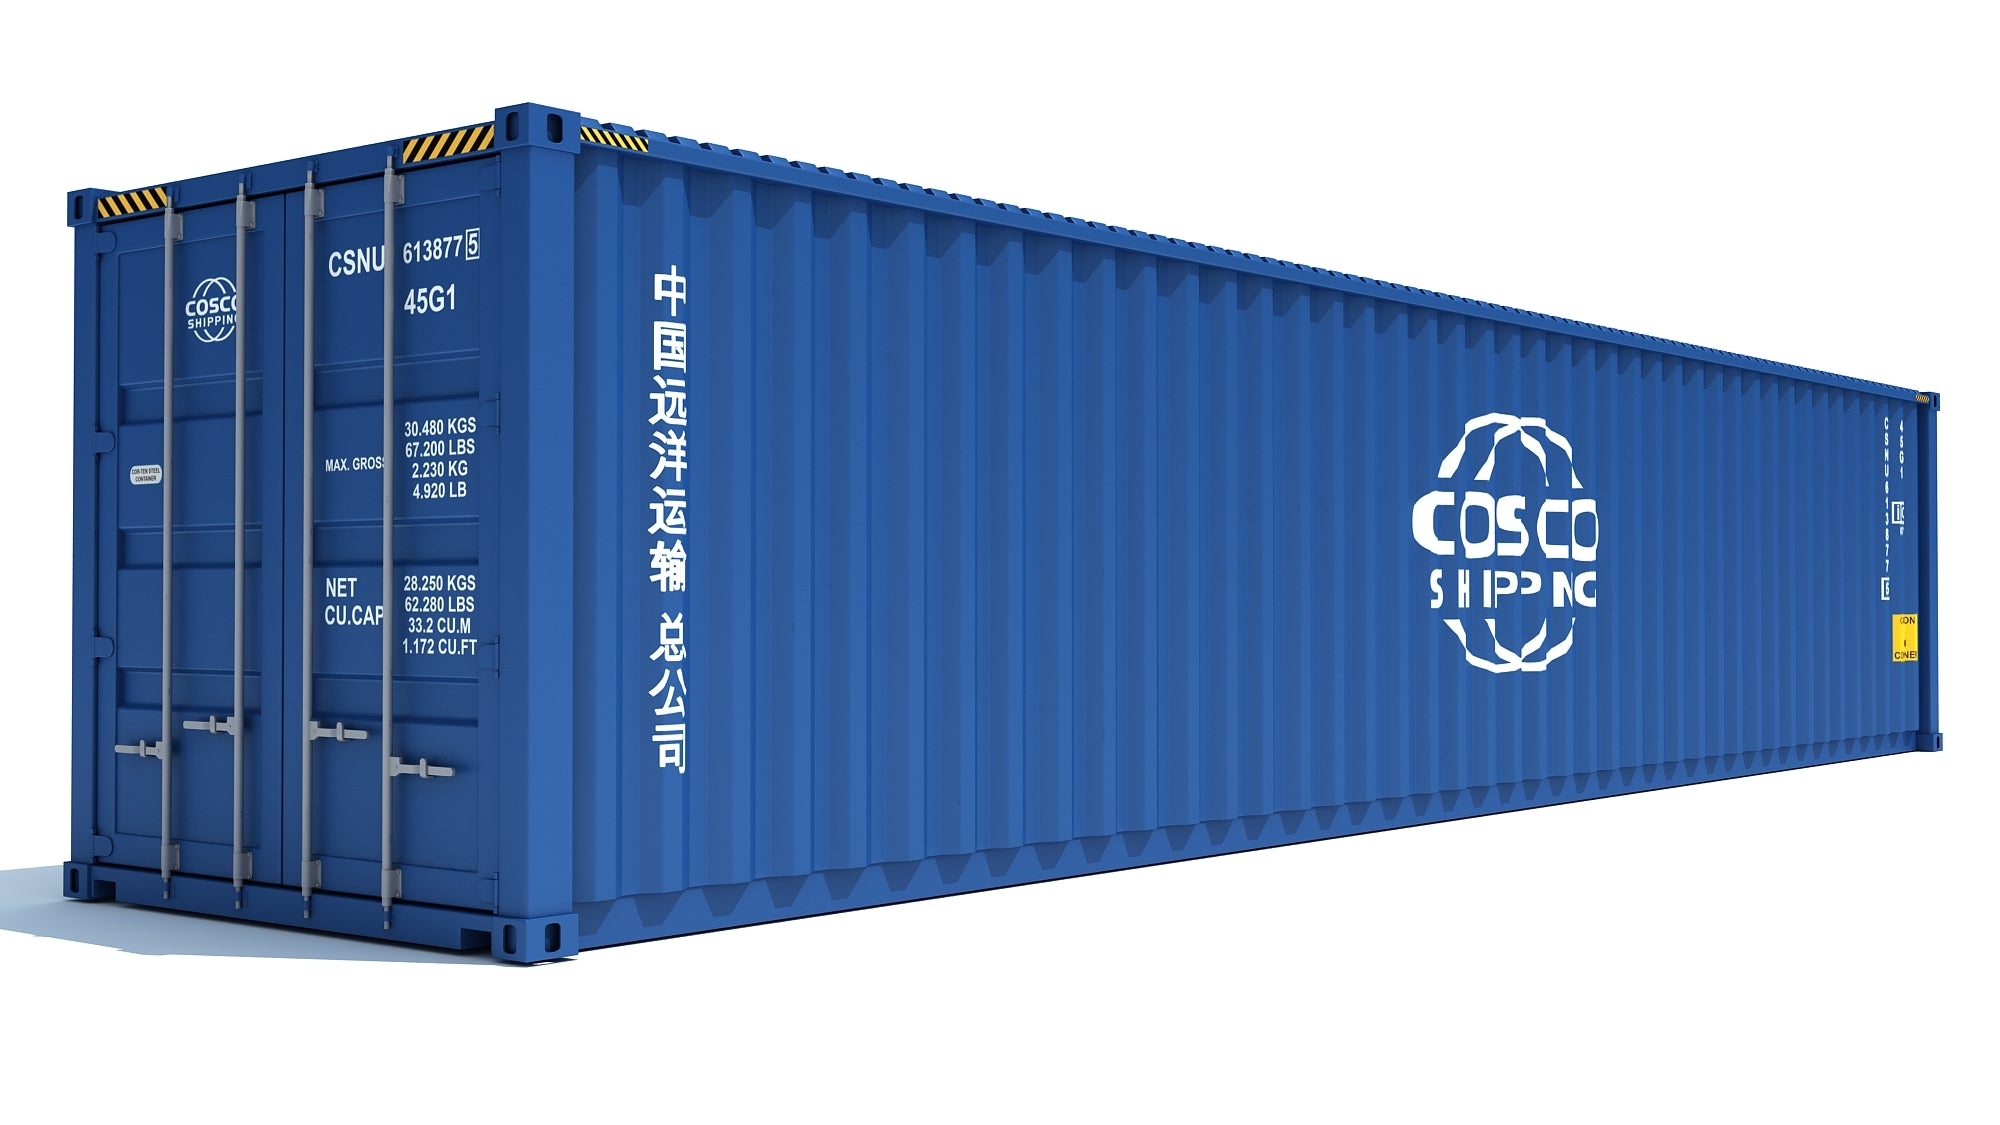 Shipping Container COSCO